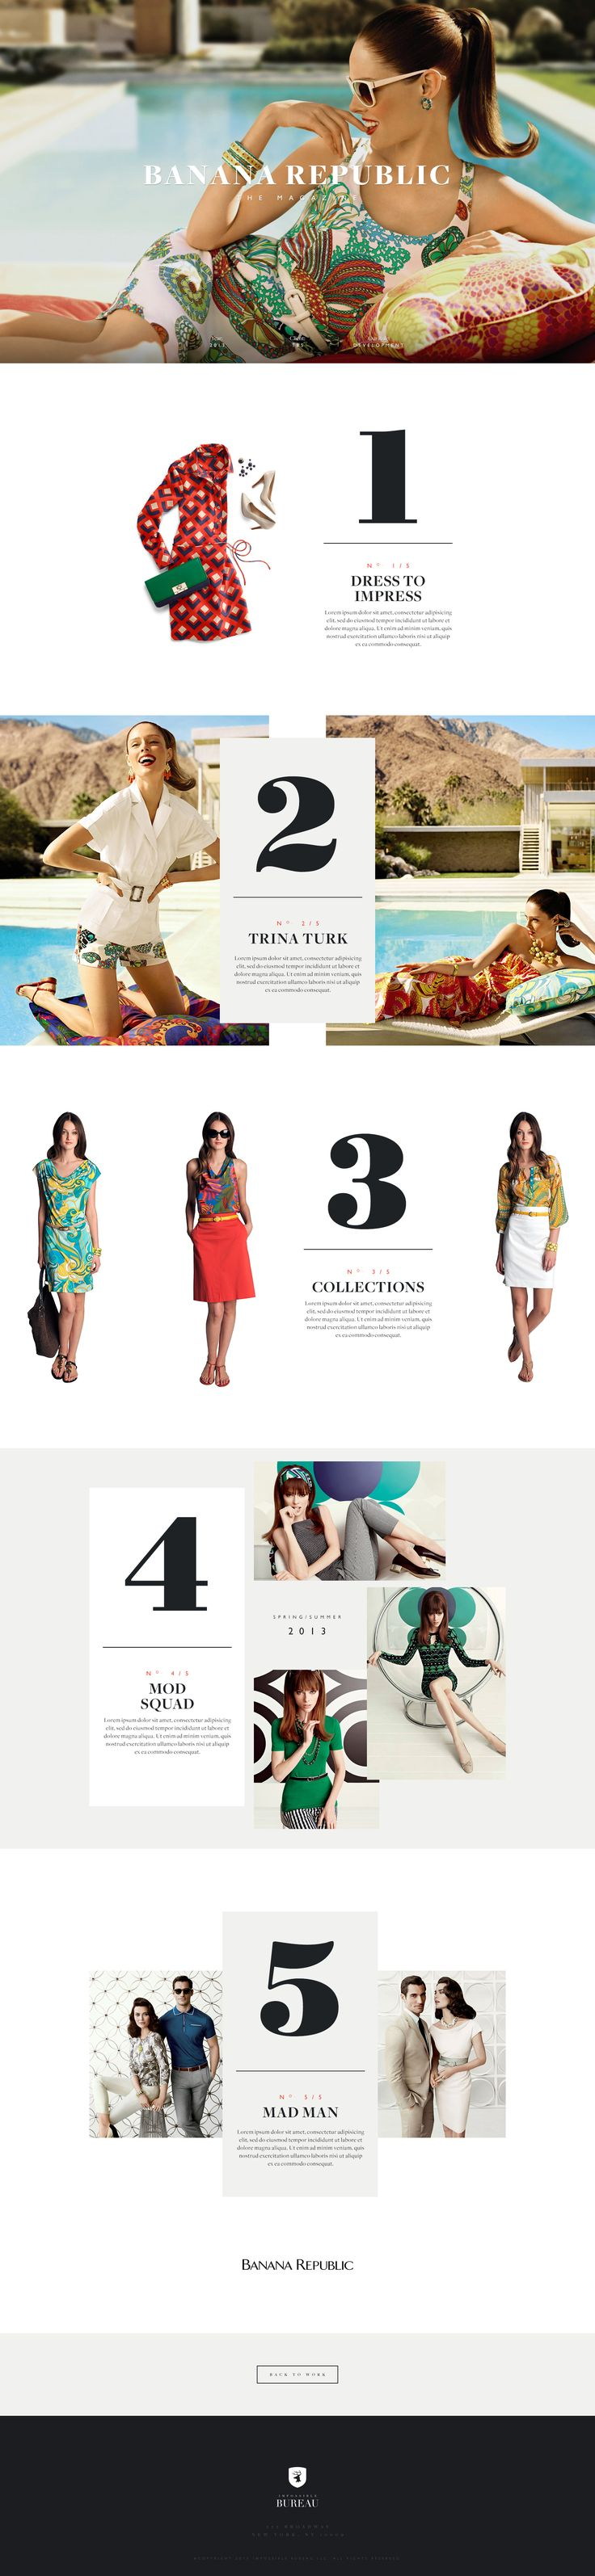 Banana Republic #webdesign #ResponsiveDesign #Design #Website # Web #UI #GUI #UX #WebDesign